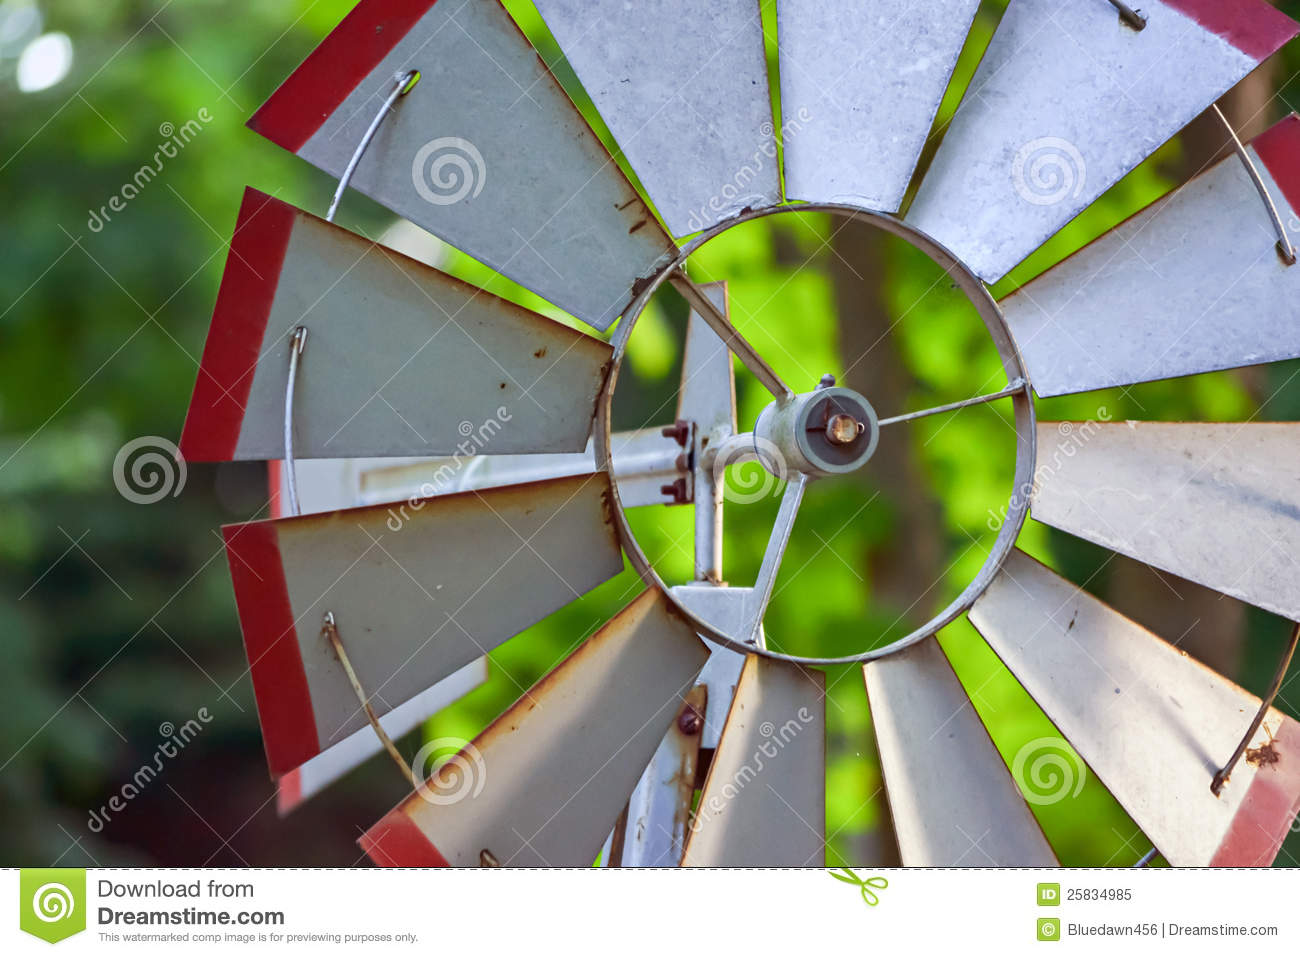 Moulin vent de jardin photo libre de droits image - Moulin a vent deco exterieur ...